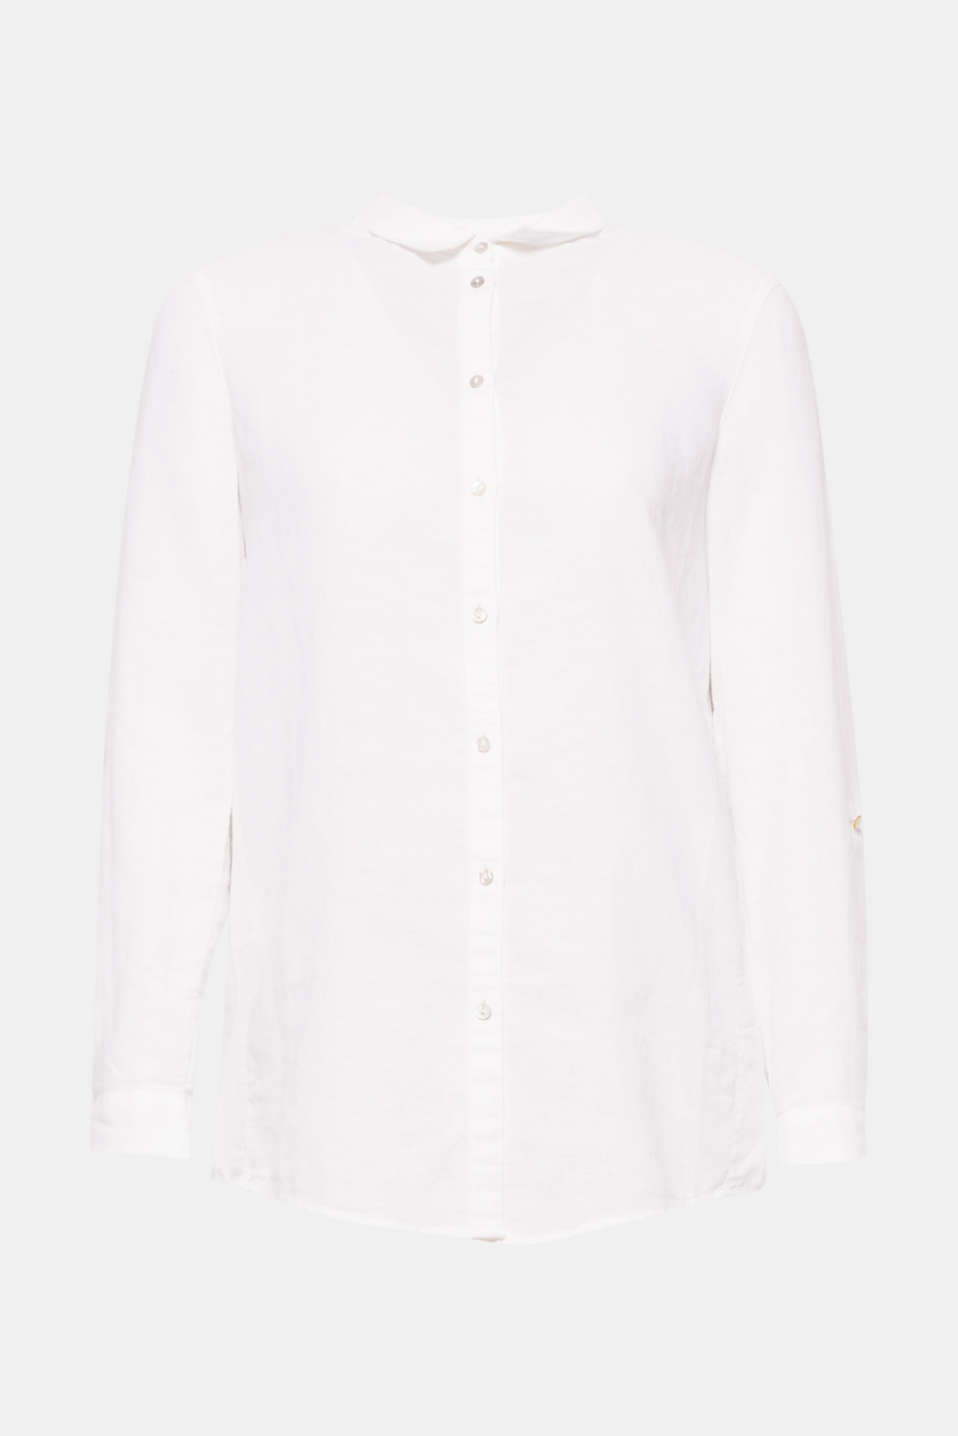 Blouse in cool blended linen with turn-up sleeves, a classic shirt collar and a rounded hem